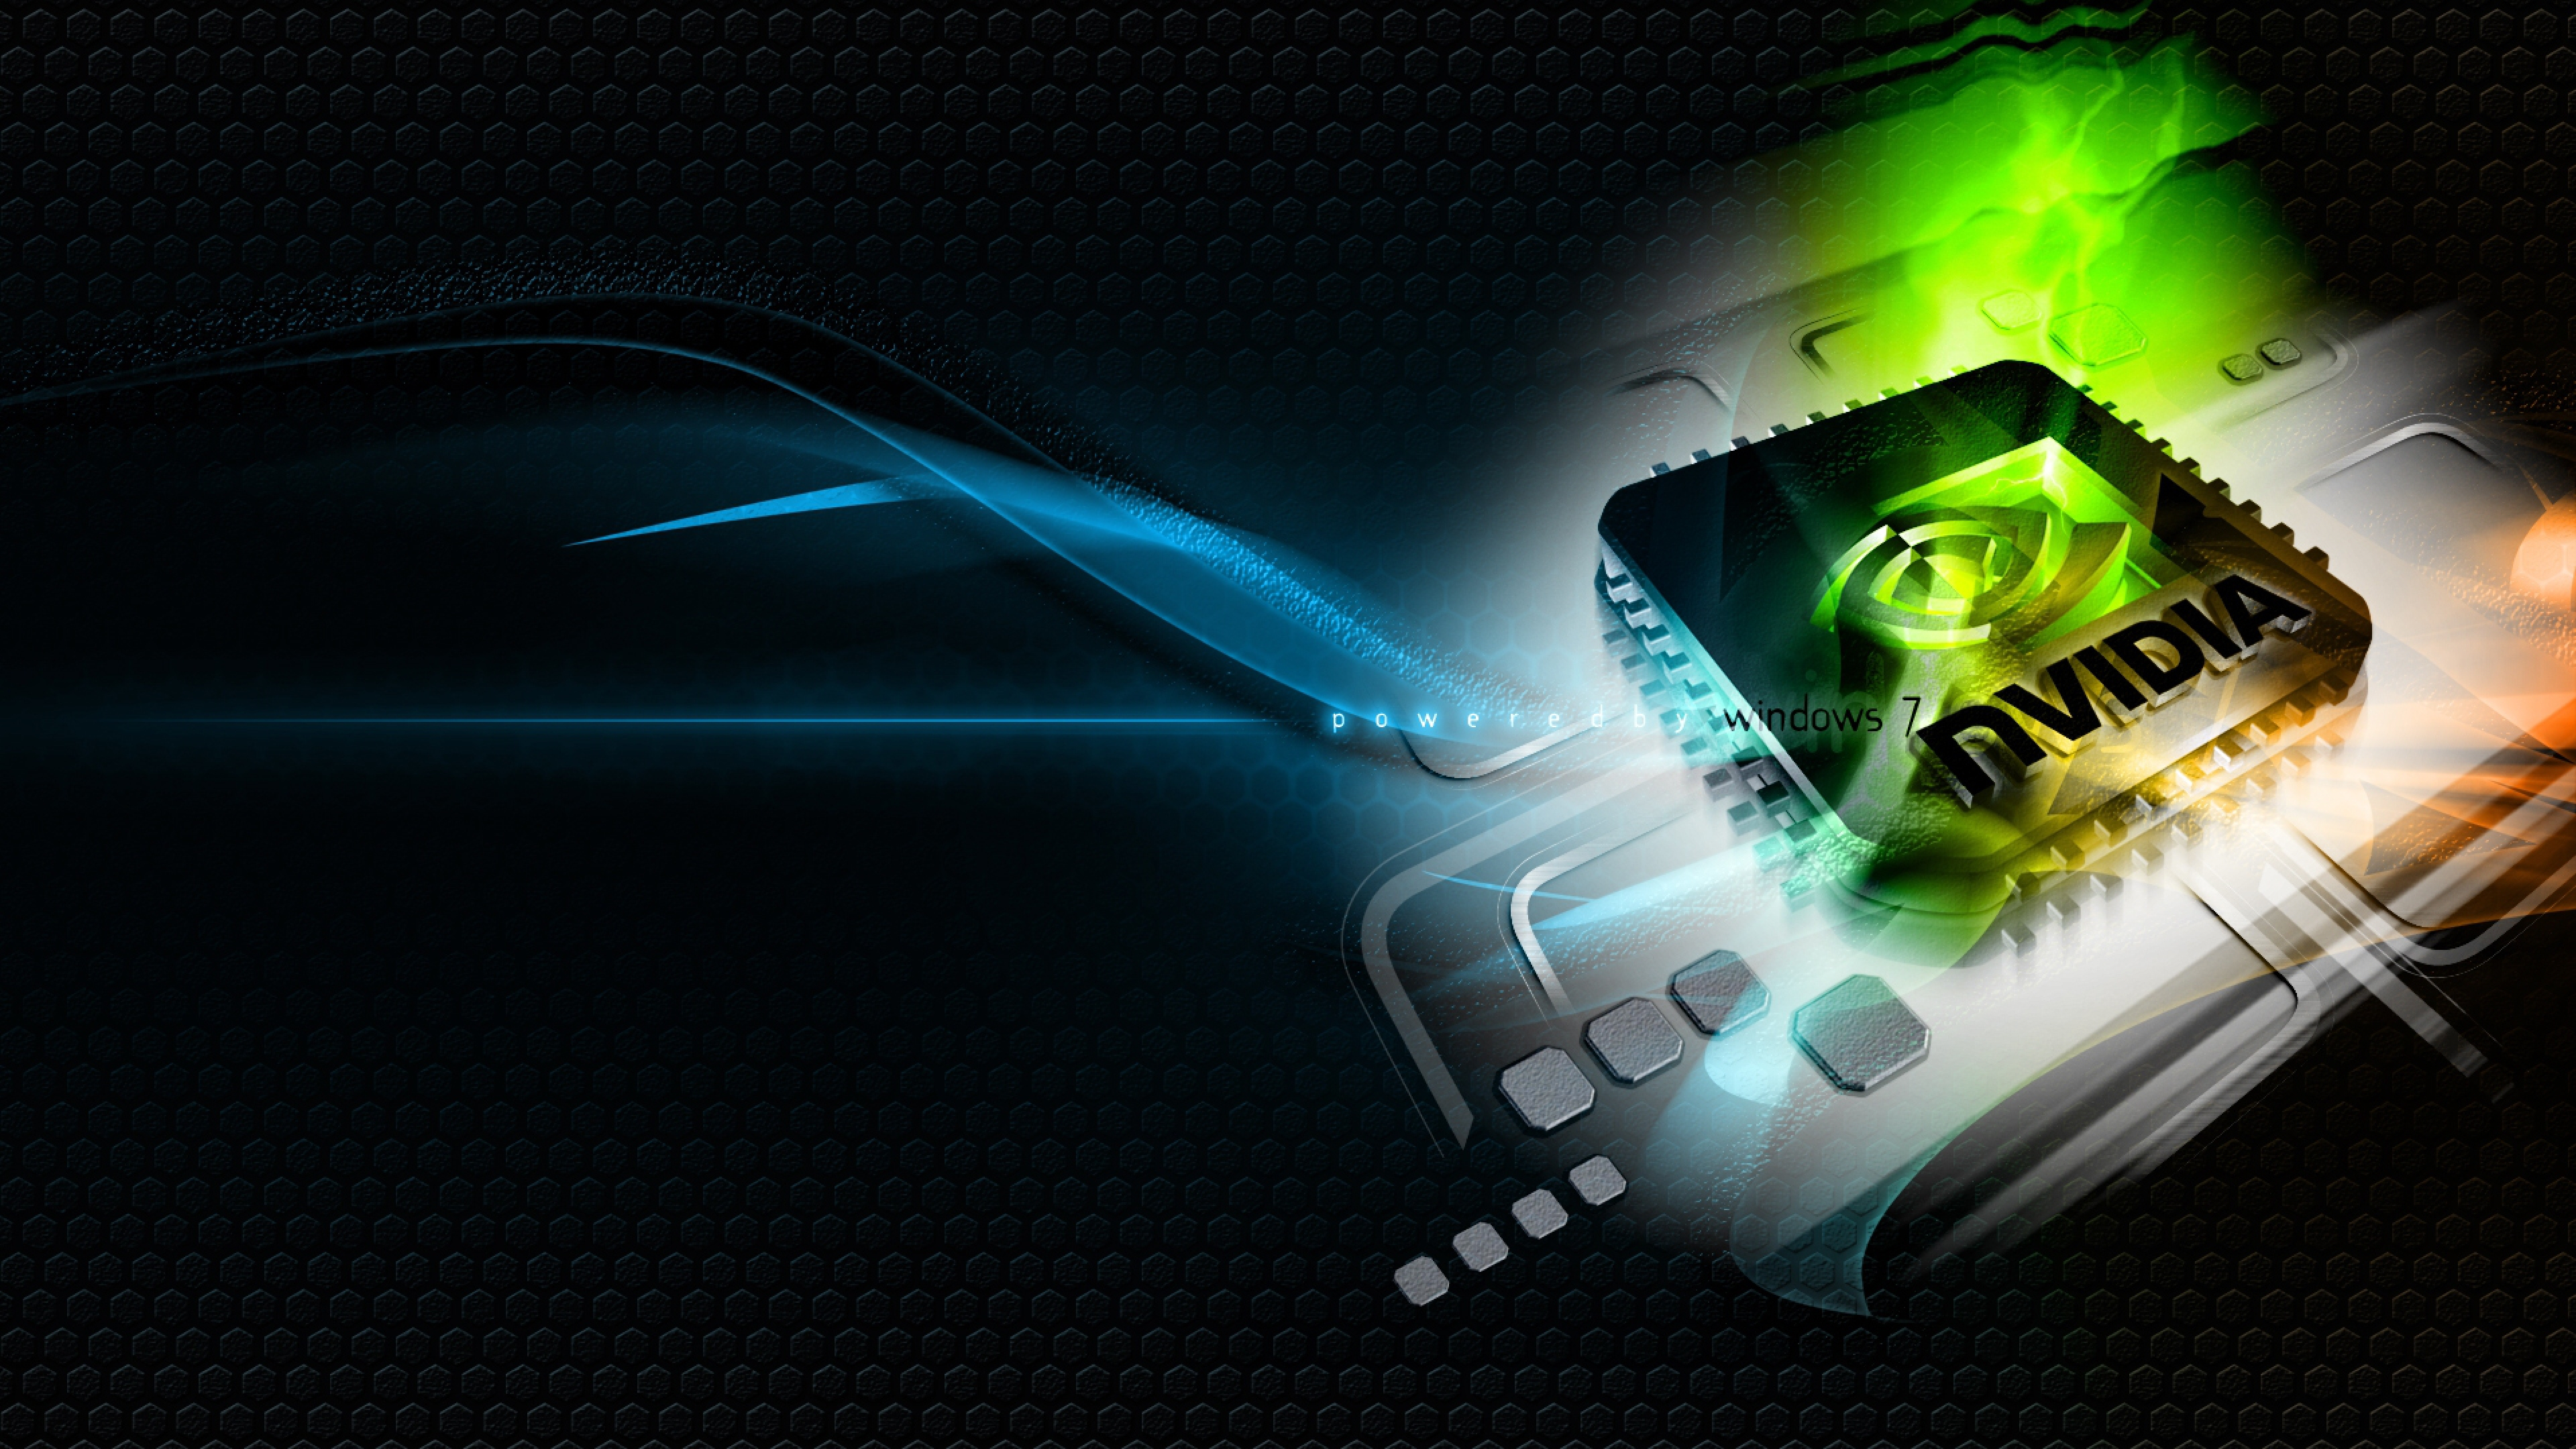 3840x2160 Wallpaper nvidia green blue white chip 3840x2160